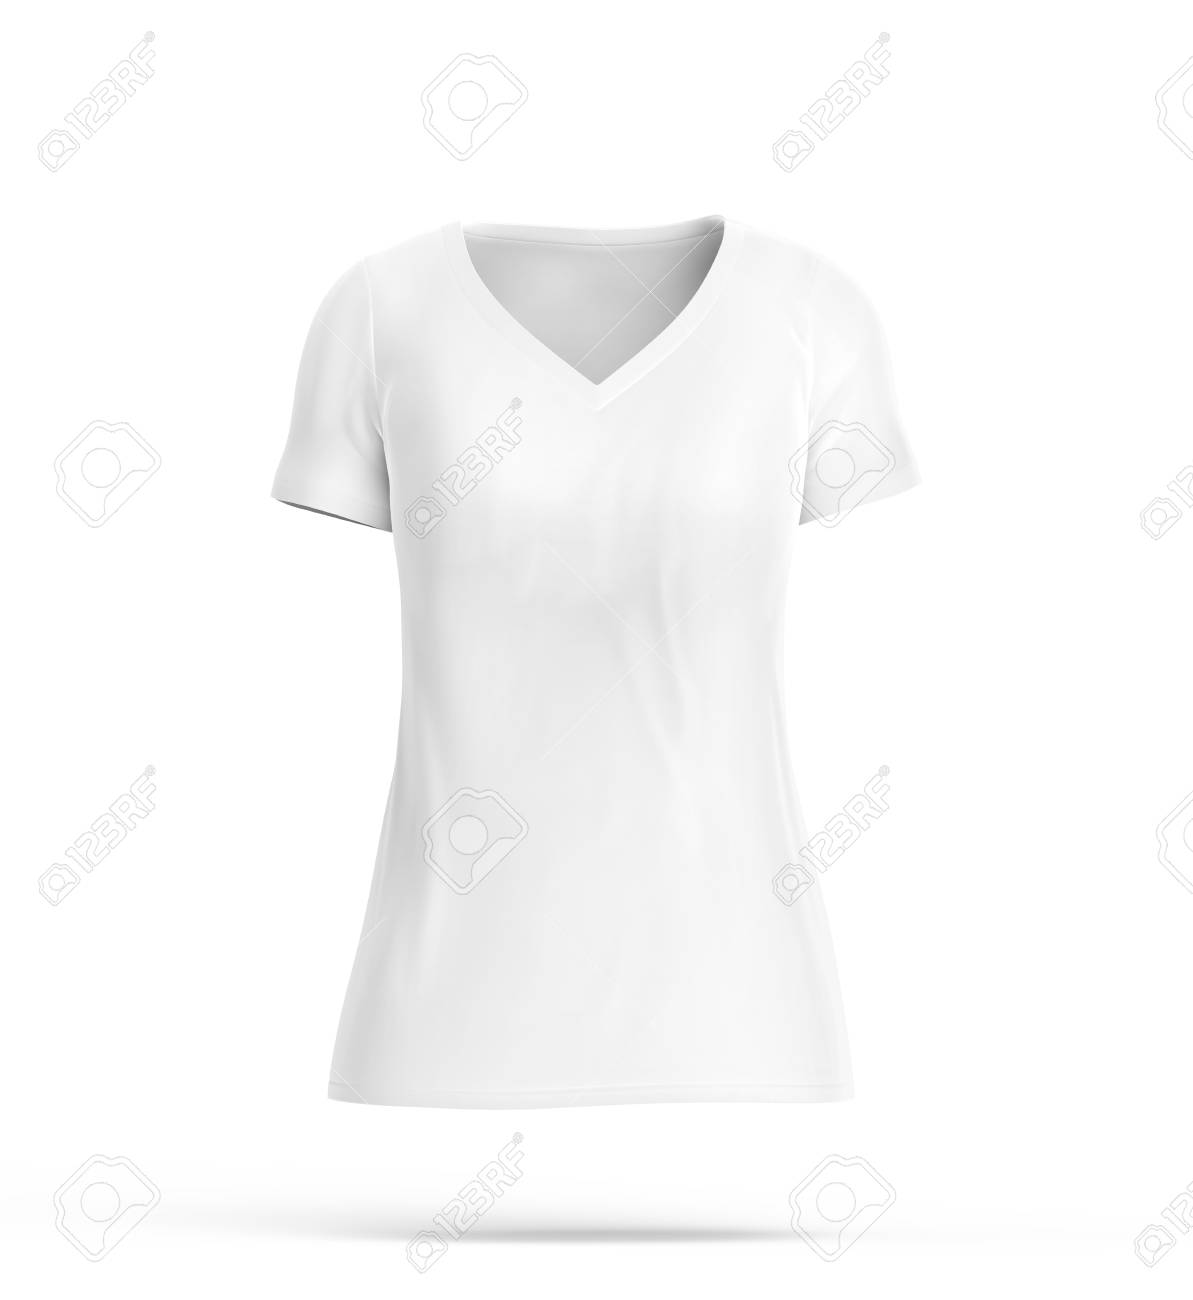 3c570d4321b1 Stock Photo - V neck T-shirt, blank white cloth for women with invisible  model isolated on white background, 3d render